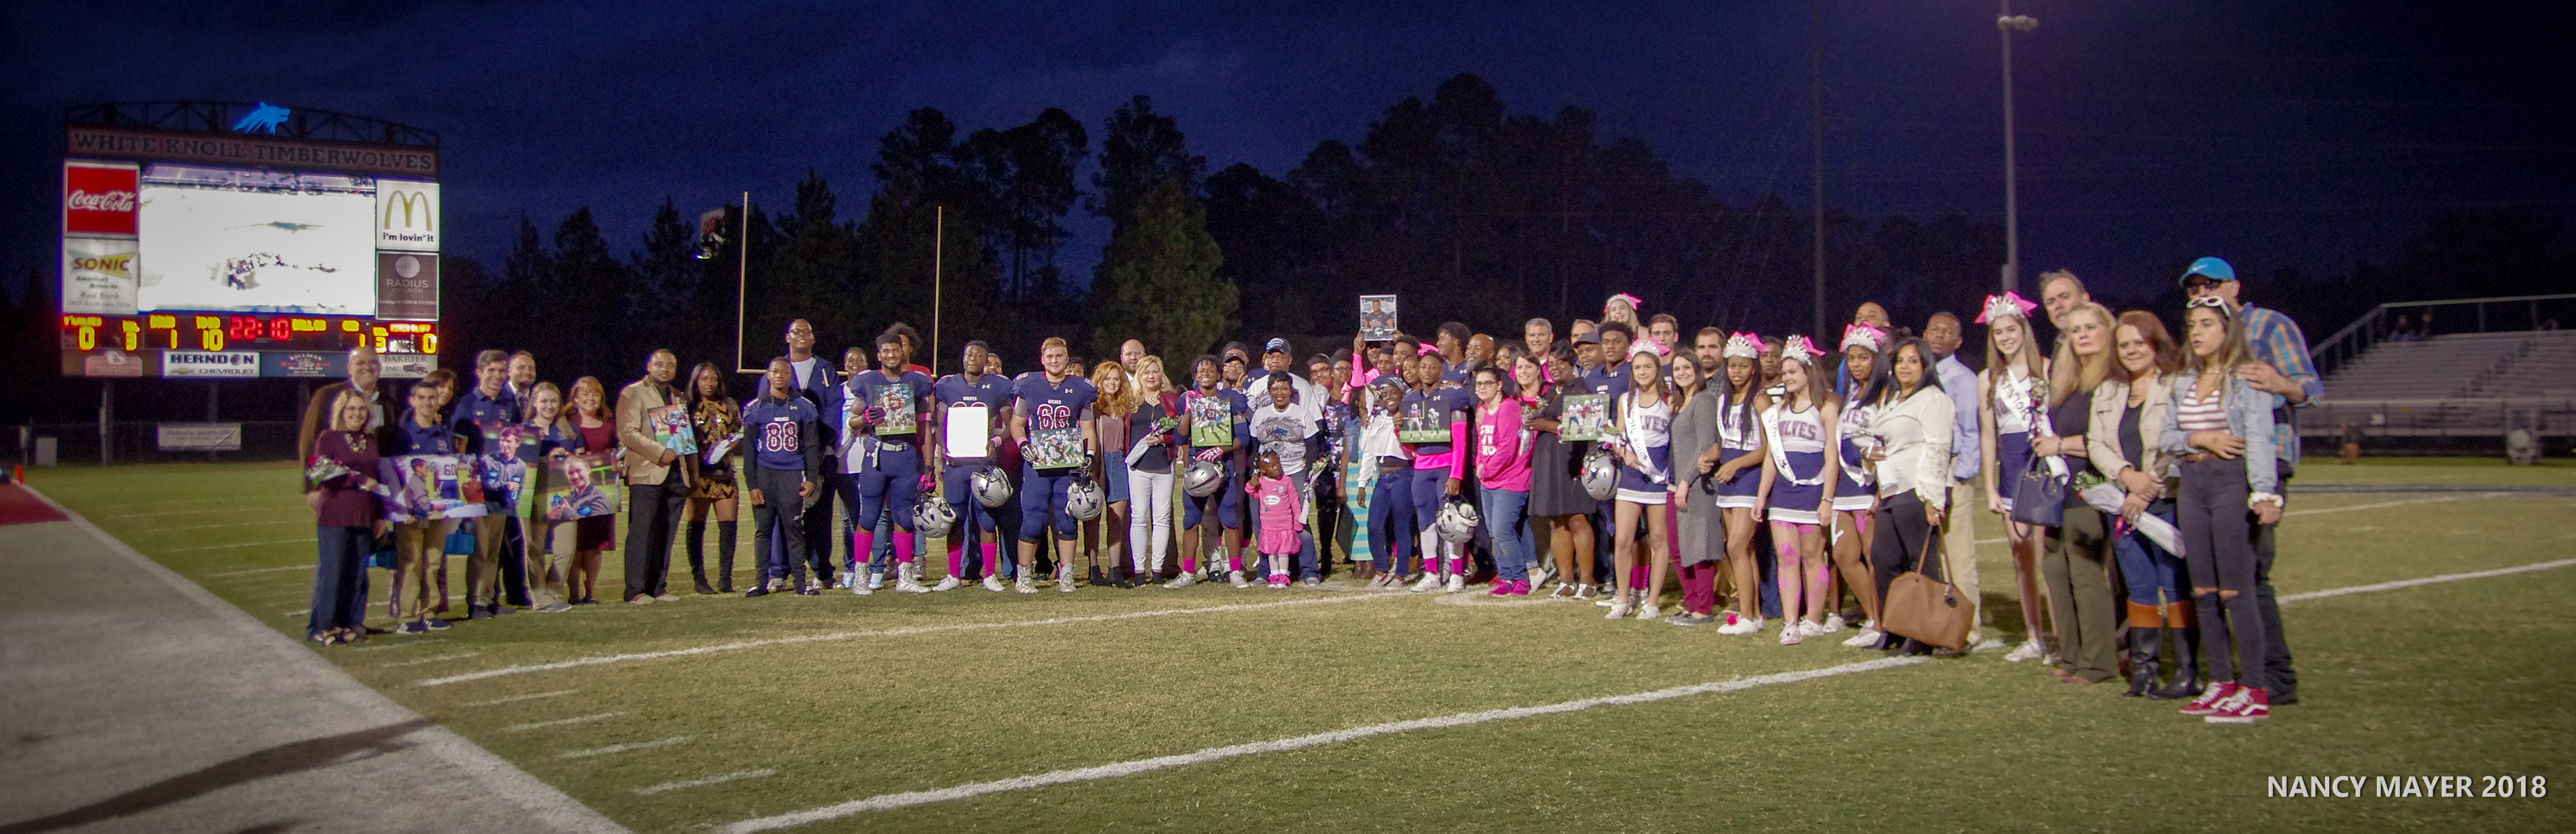 Senior Night photos posted soon!